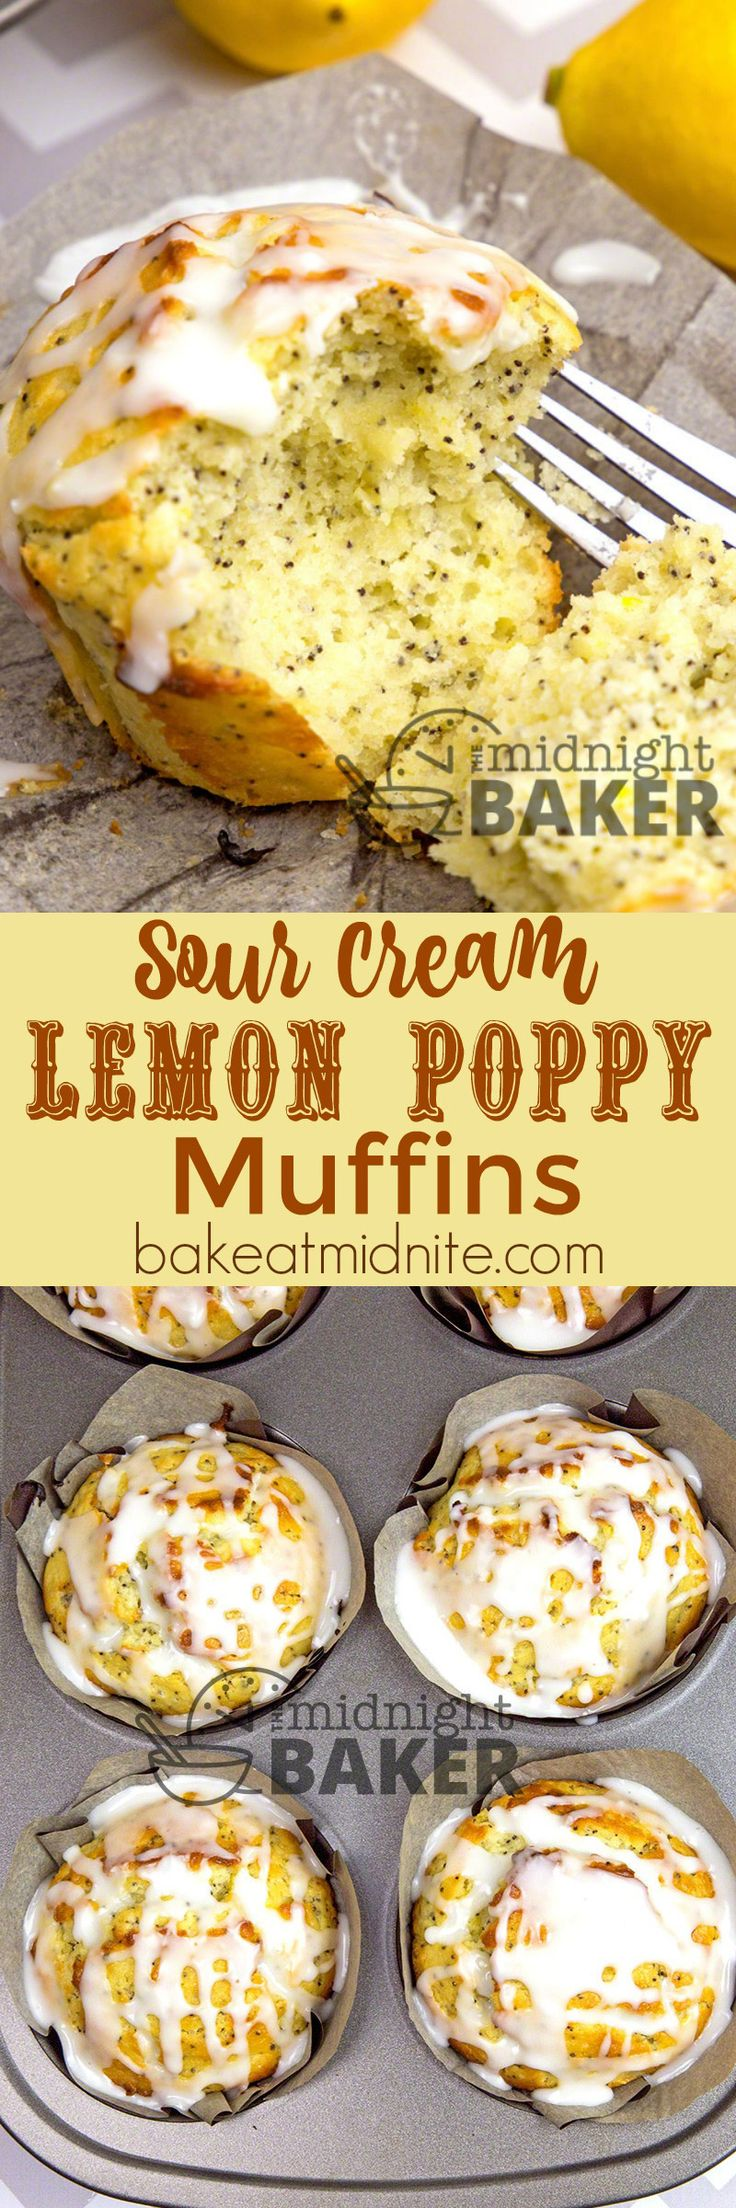 Sour cream gives these lemon poppy muffins their soft and tender texture.                                                                                                                                                                                 More